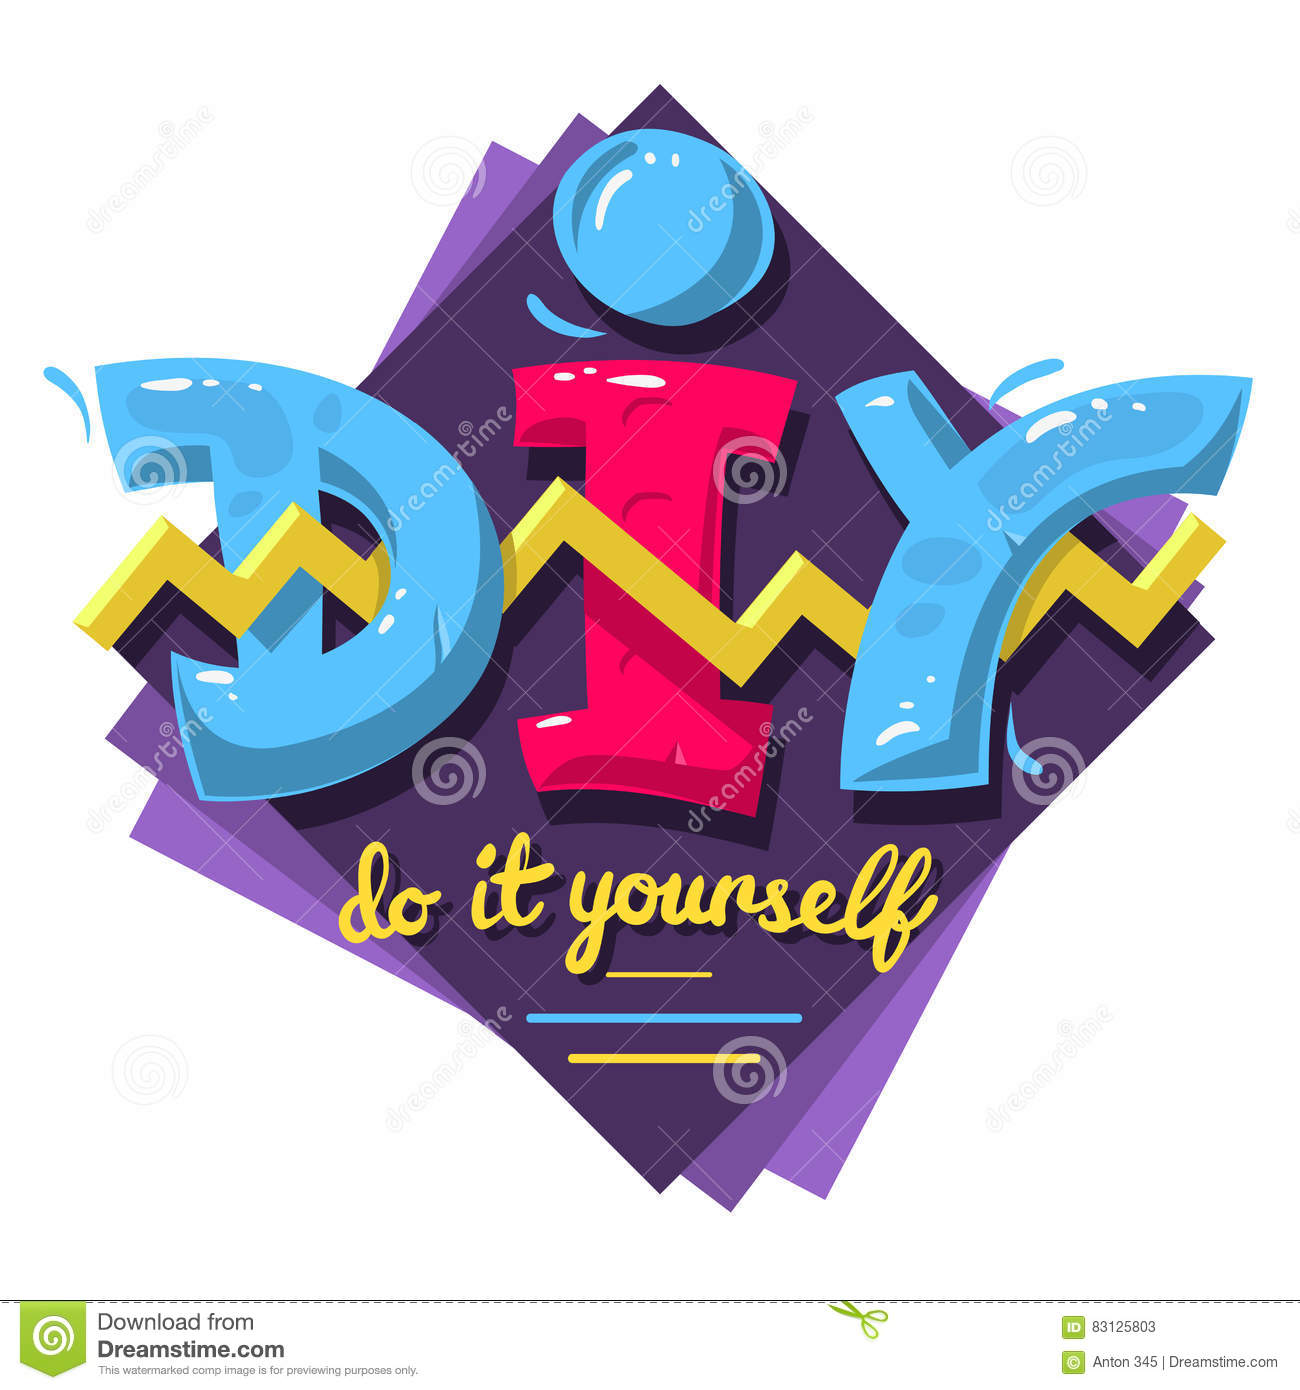 Diy acronym do it yourself 90 s vibrant colors aesthetic typ stock diy acronym do it yourself 90 s vibrant colors aesthetic typ solutioingenieria Images